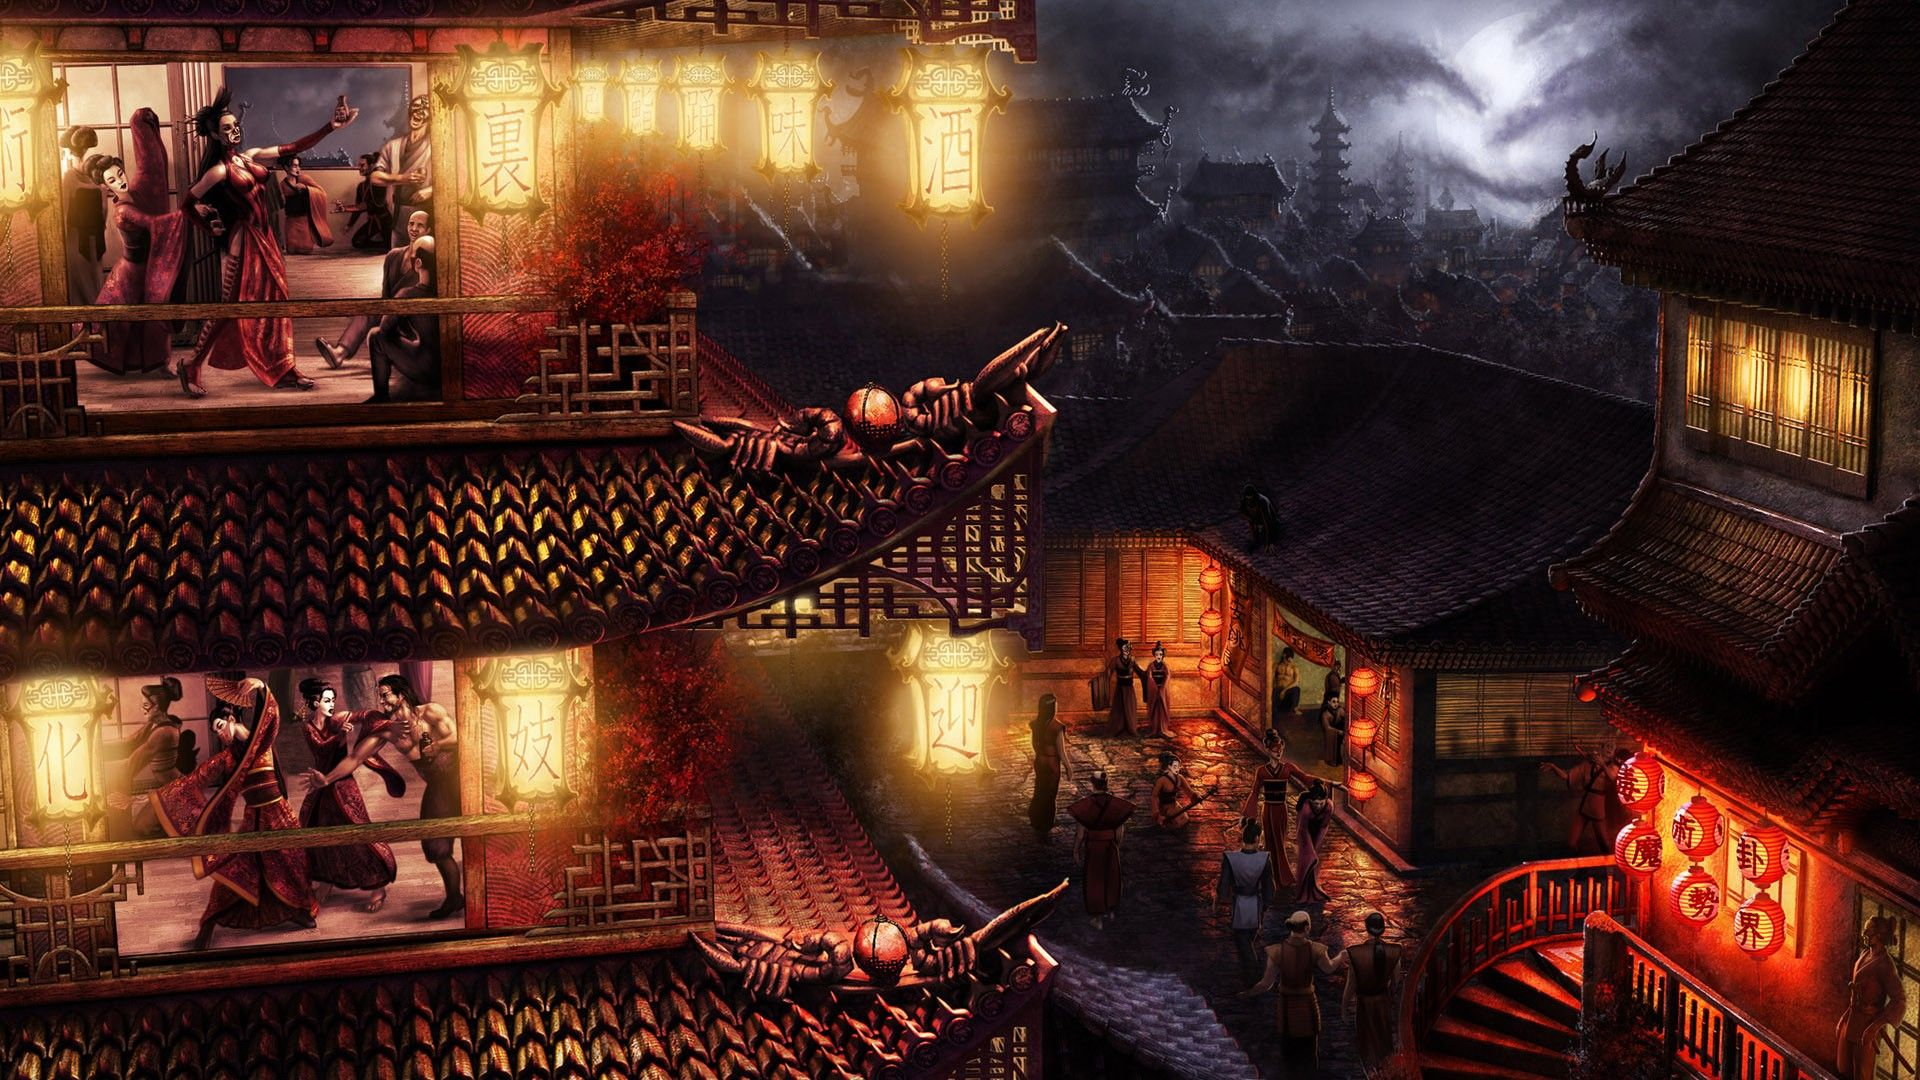 Ancient Japanese Cities Painted Wallpaper Ancient Japanese City 1920x1080 Wallpapers 3d For Okno Noch Fentezi